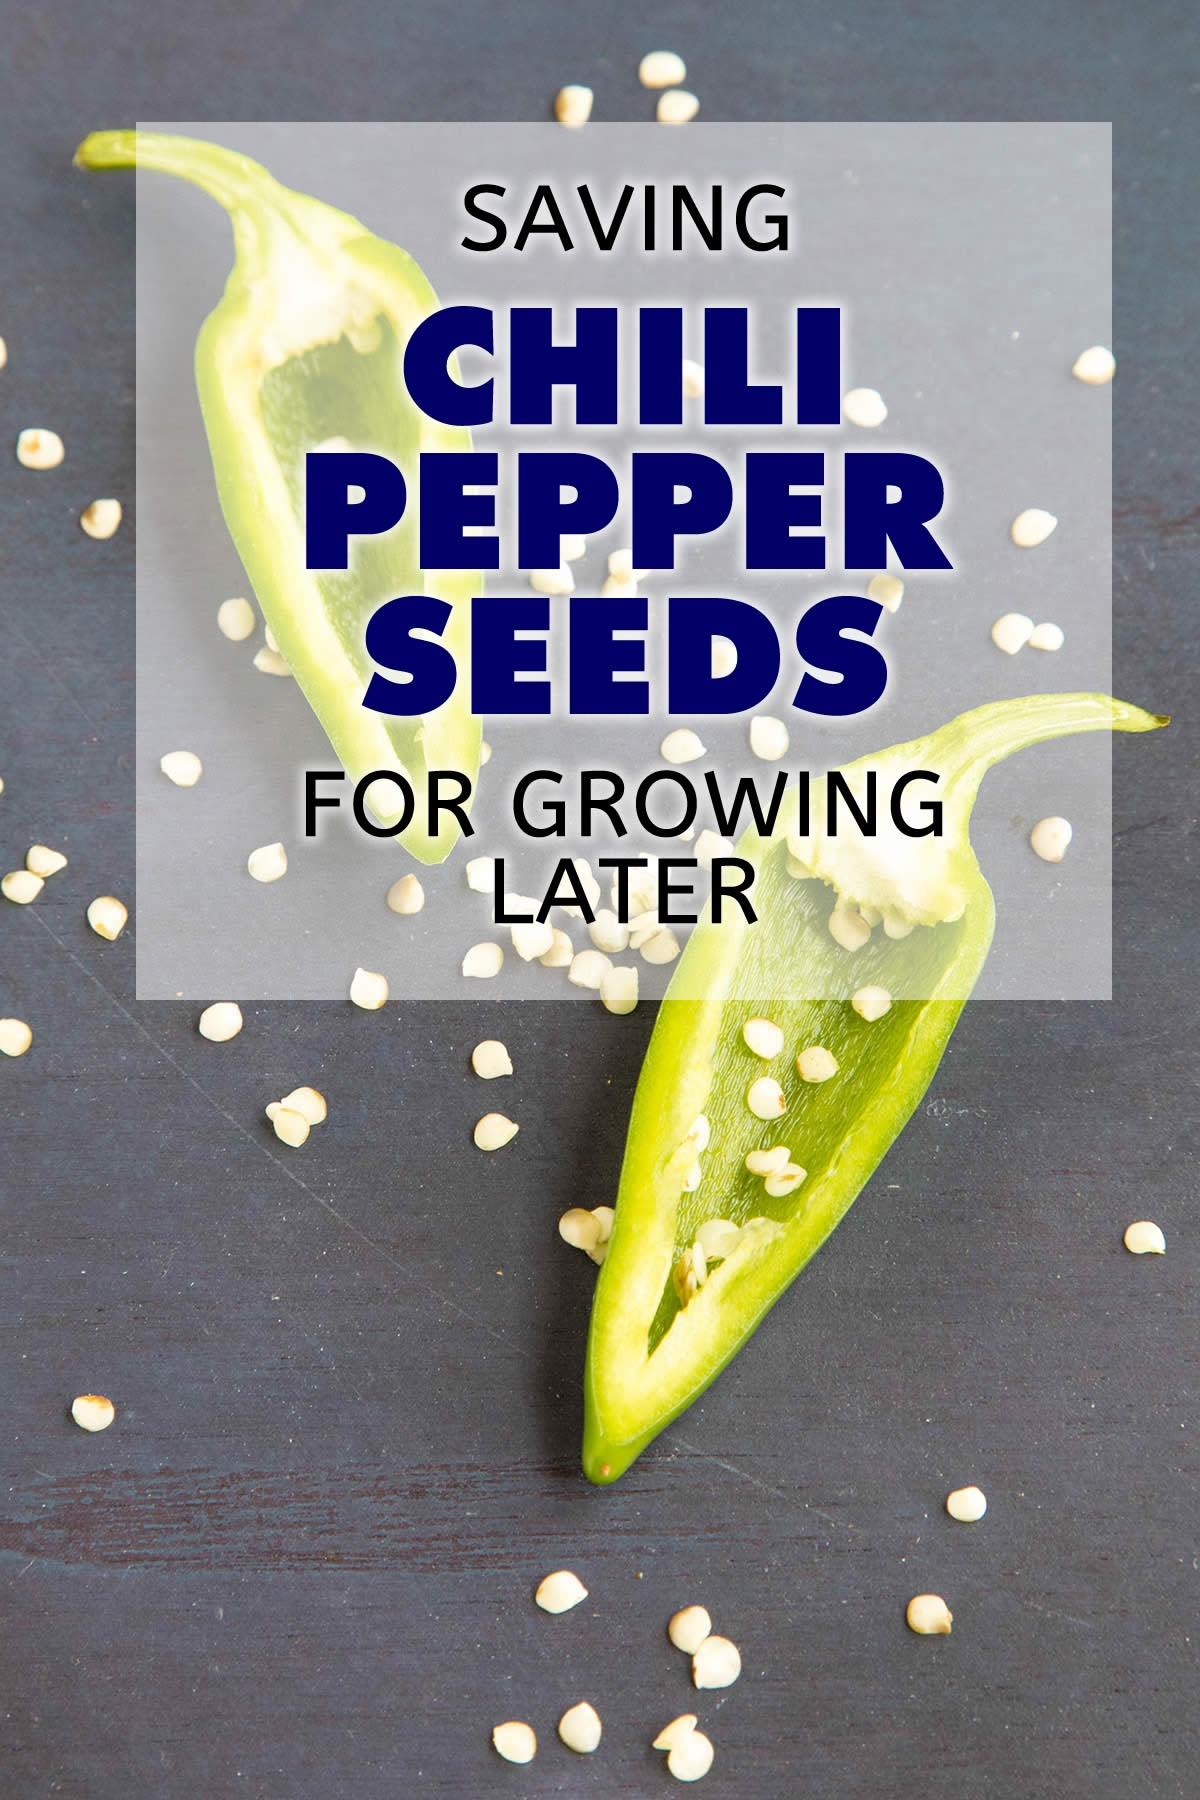 Saving Chili Pepper Seeds for Growing Later